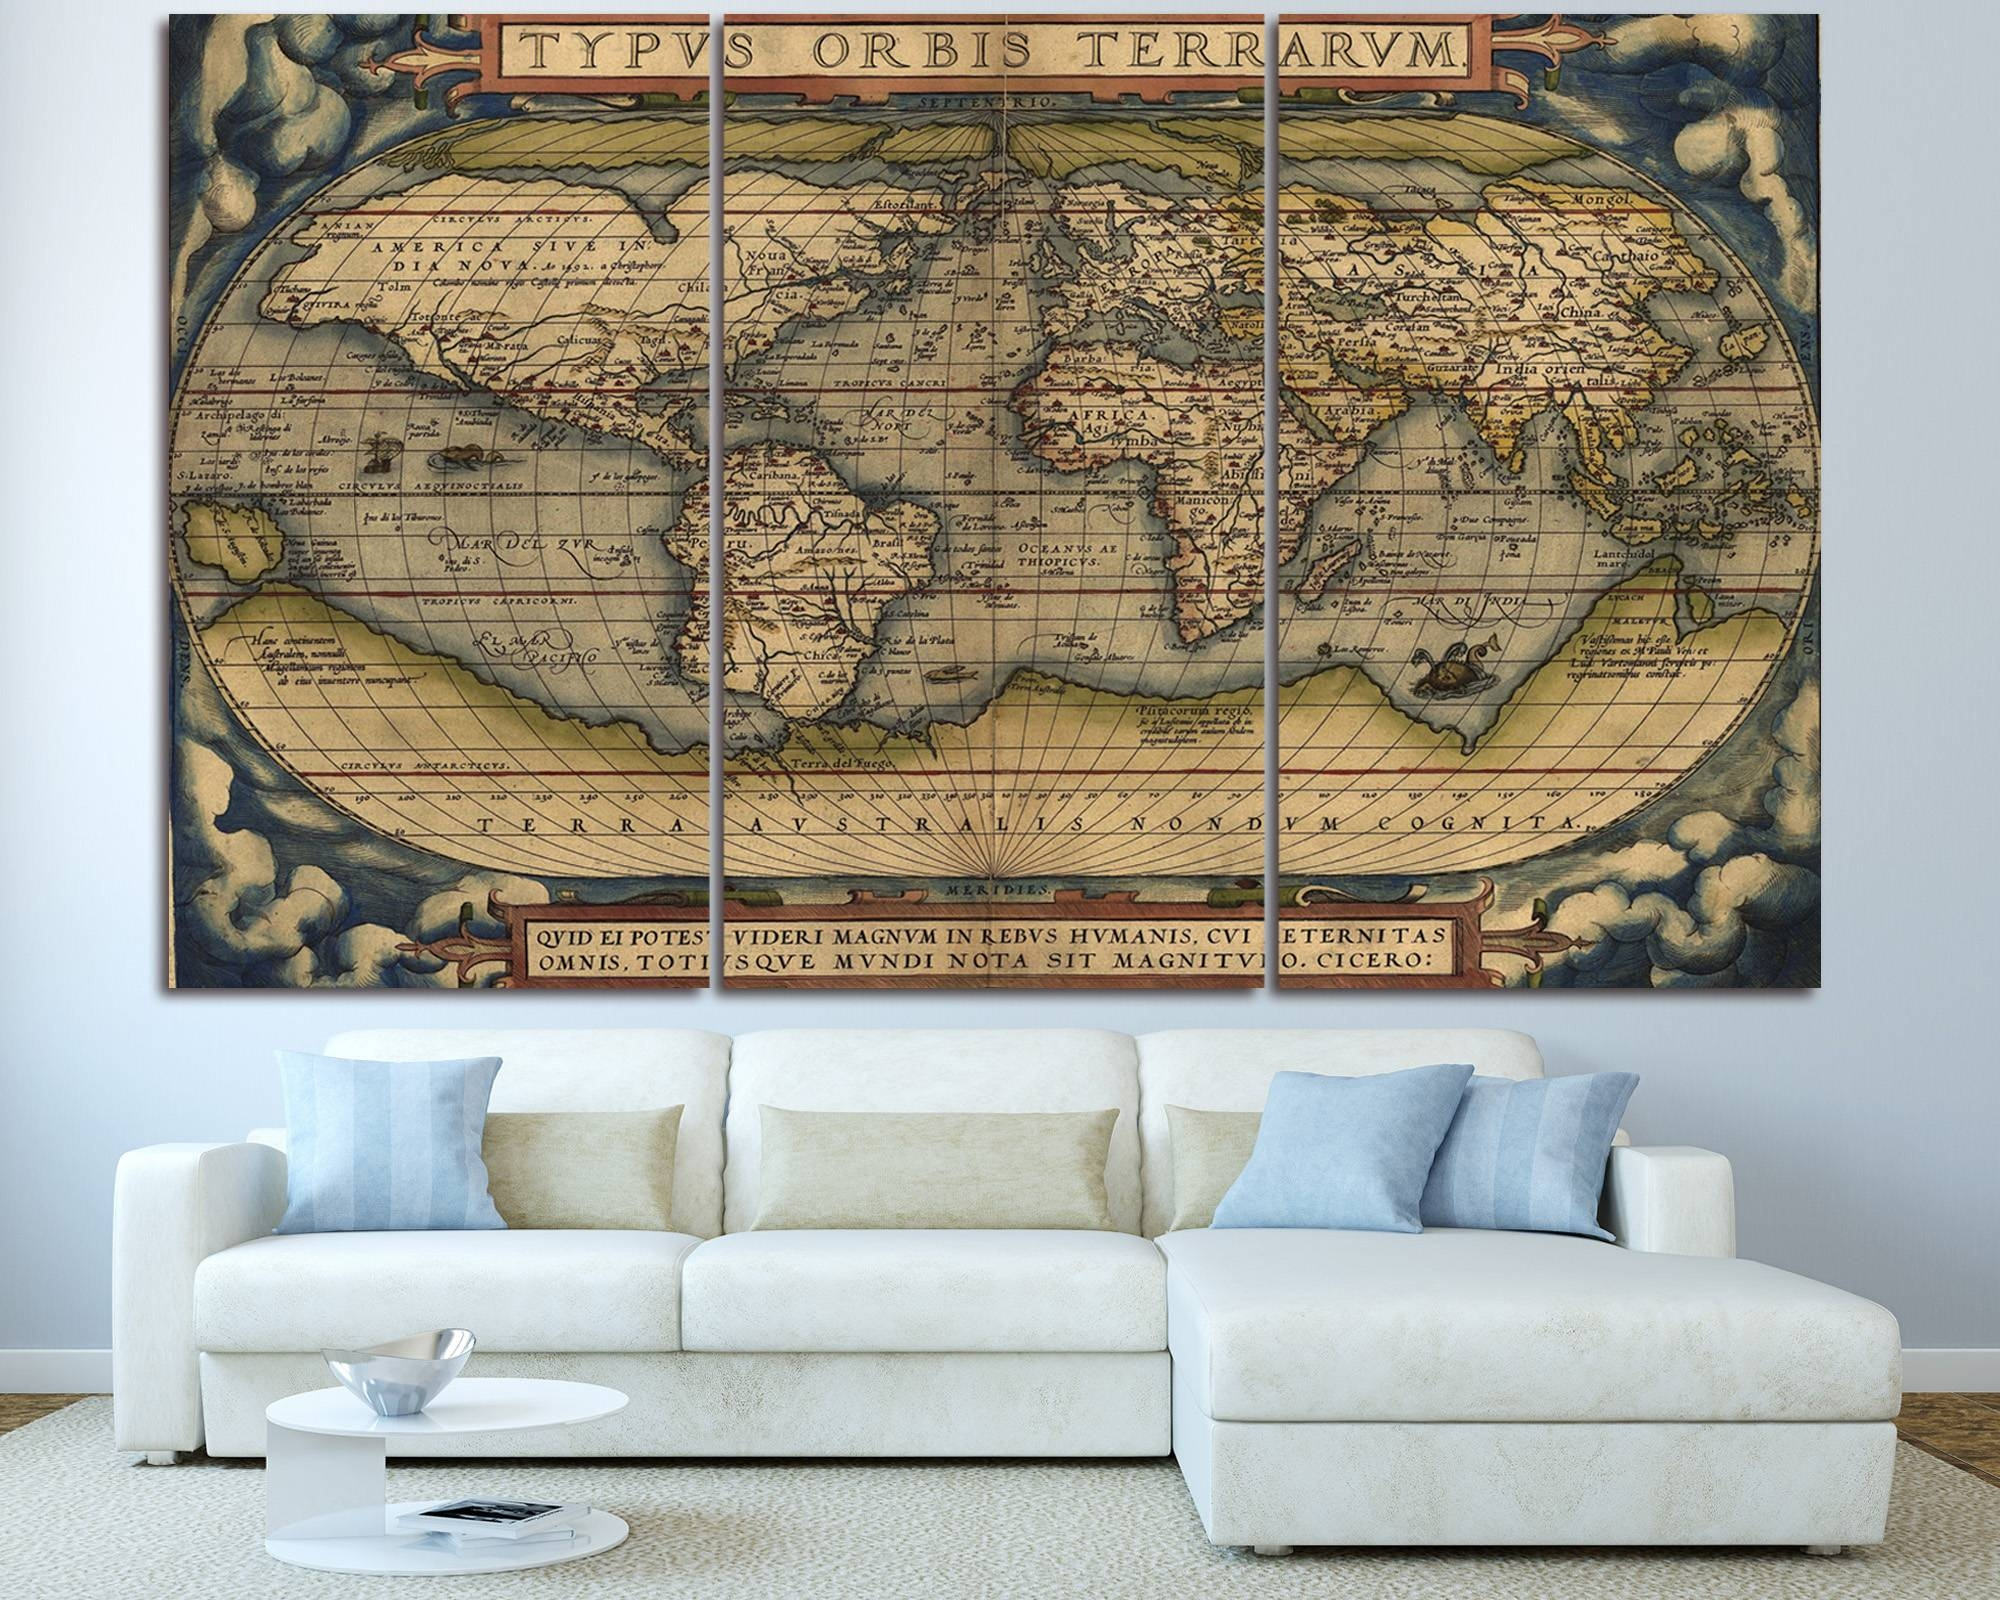 Texelprintart Studio – Canvas Wall Art Print For Home Decoration Intended For Latest Large Map Wall Art (View 12 of 20)